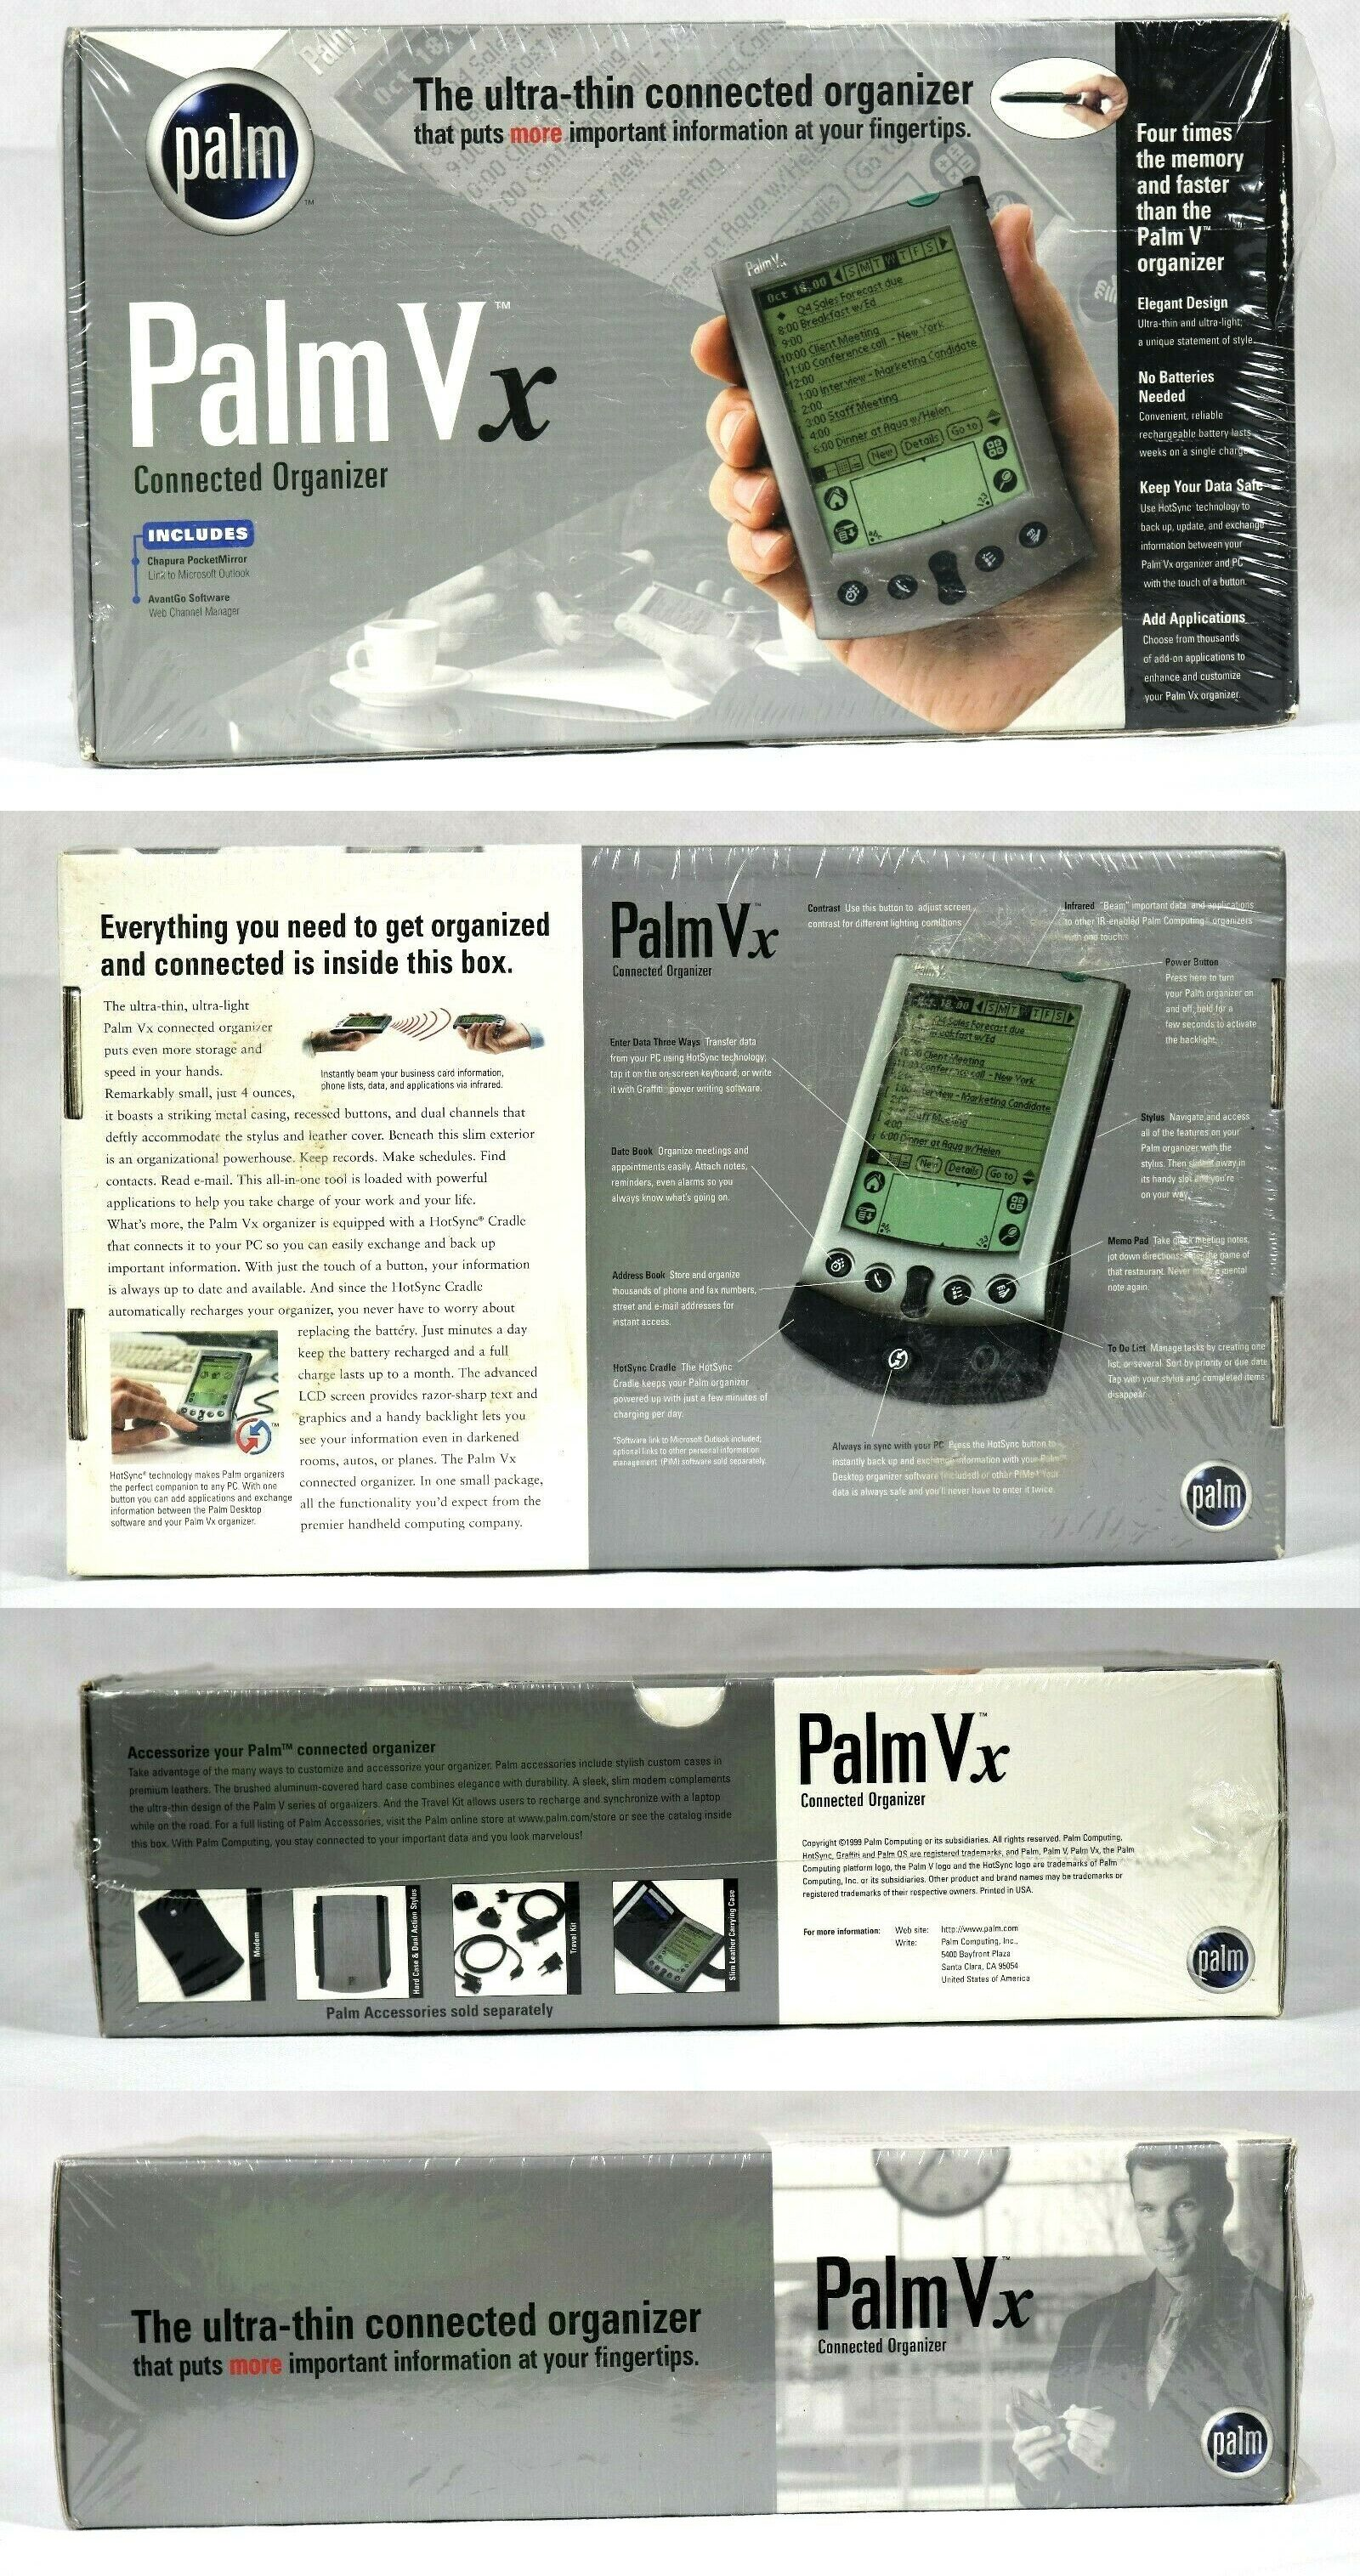 Pdas 38331 New Palm Vx Connected Organizer Pda Factory Sealed New In Box Buy It Now Only 39 77 On Ebay Pdas Hp Ipaq Ebay Electronic address book for seniors